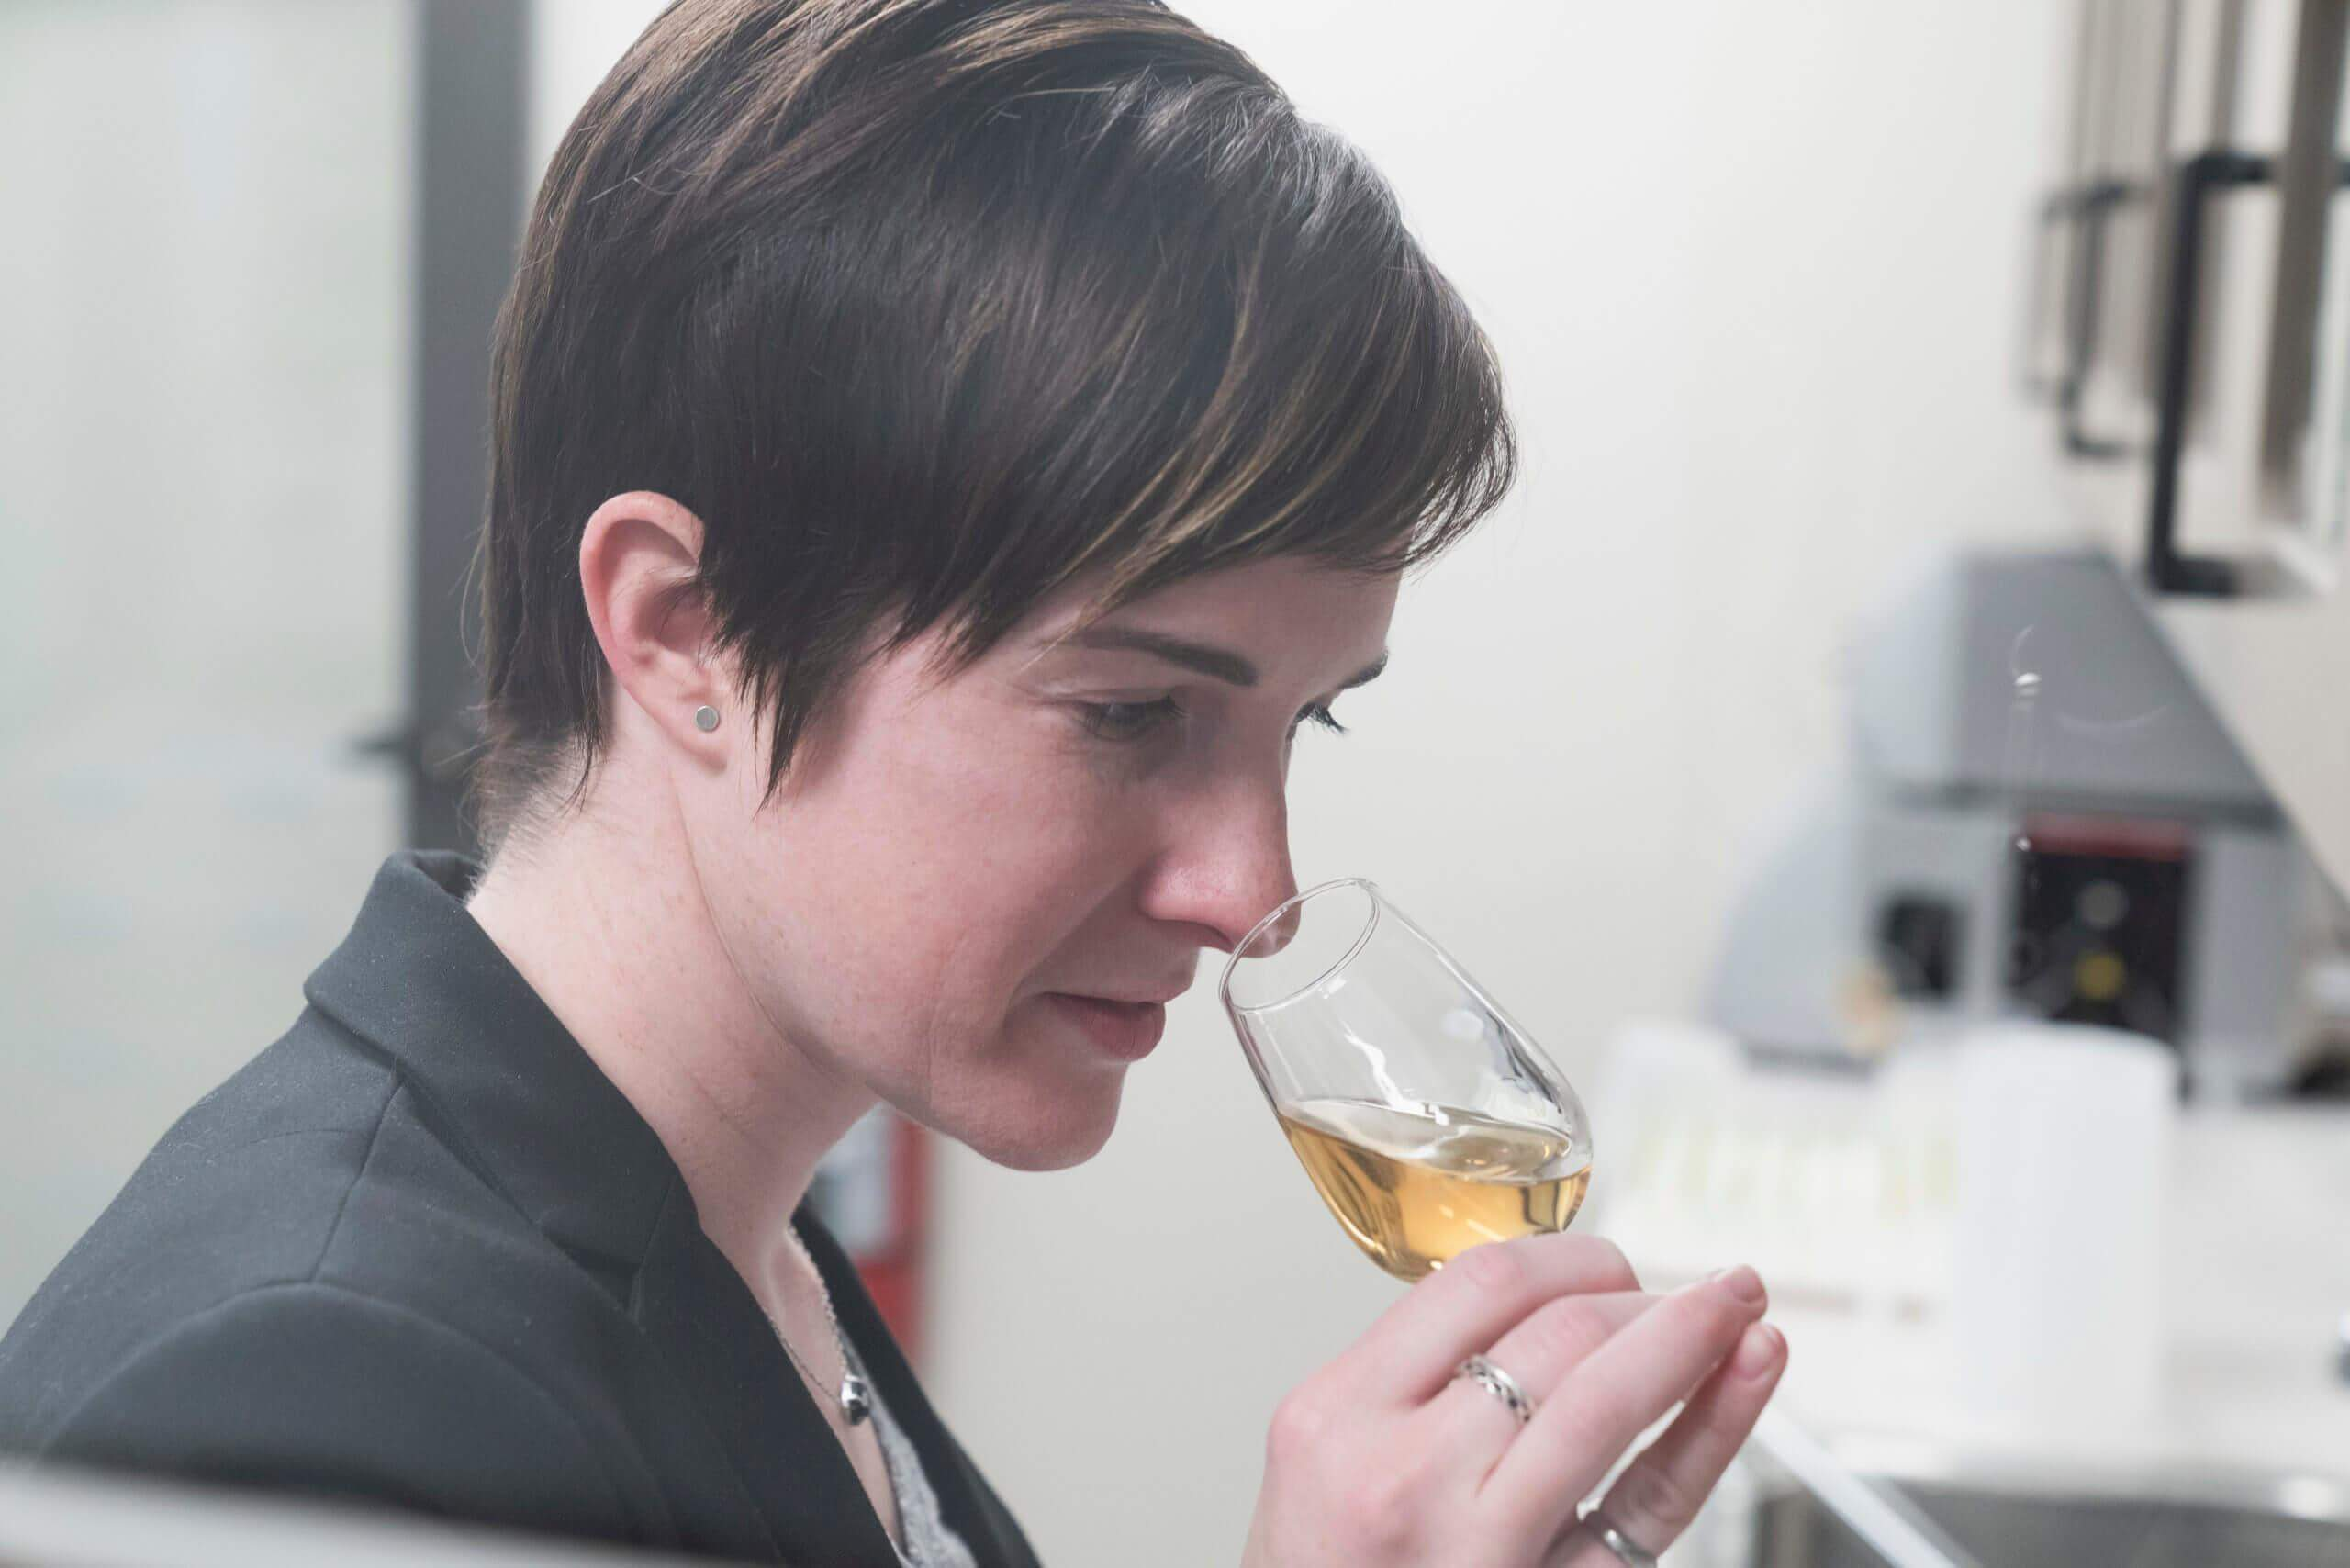 Alex Castle smelling a glass of whiskey in her lab